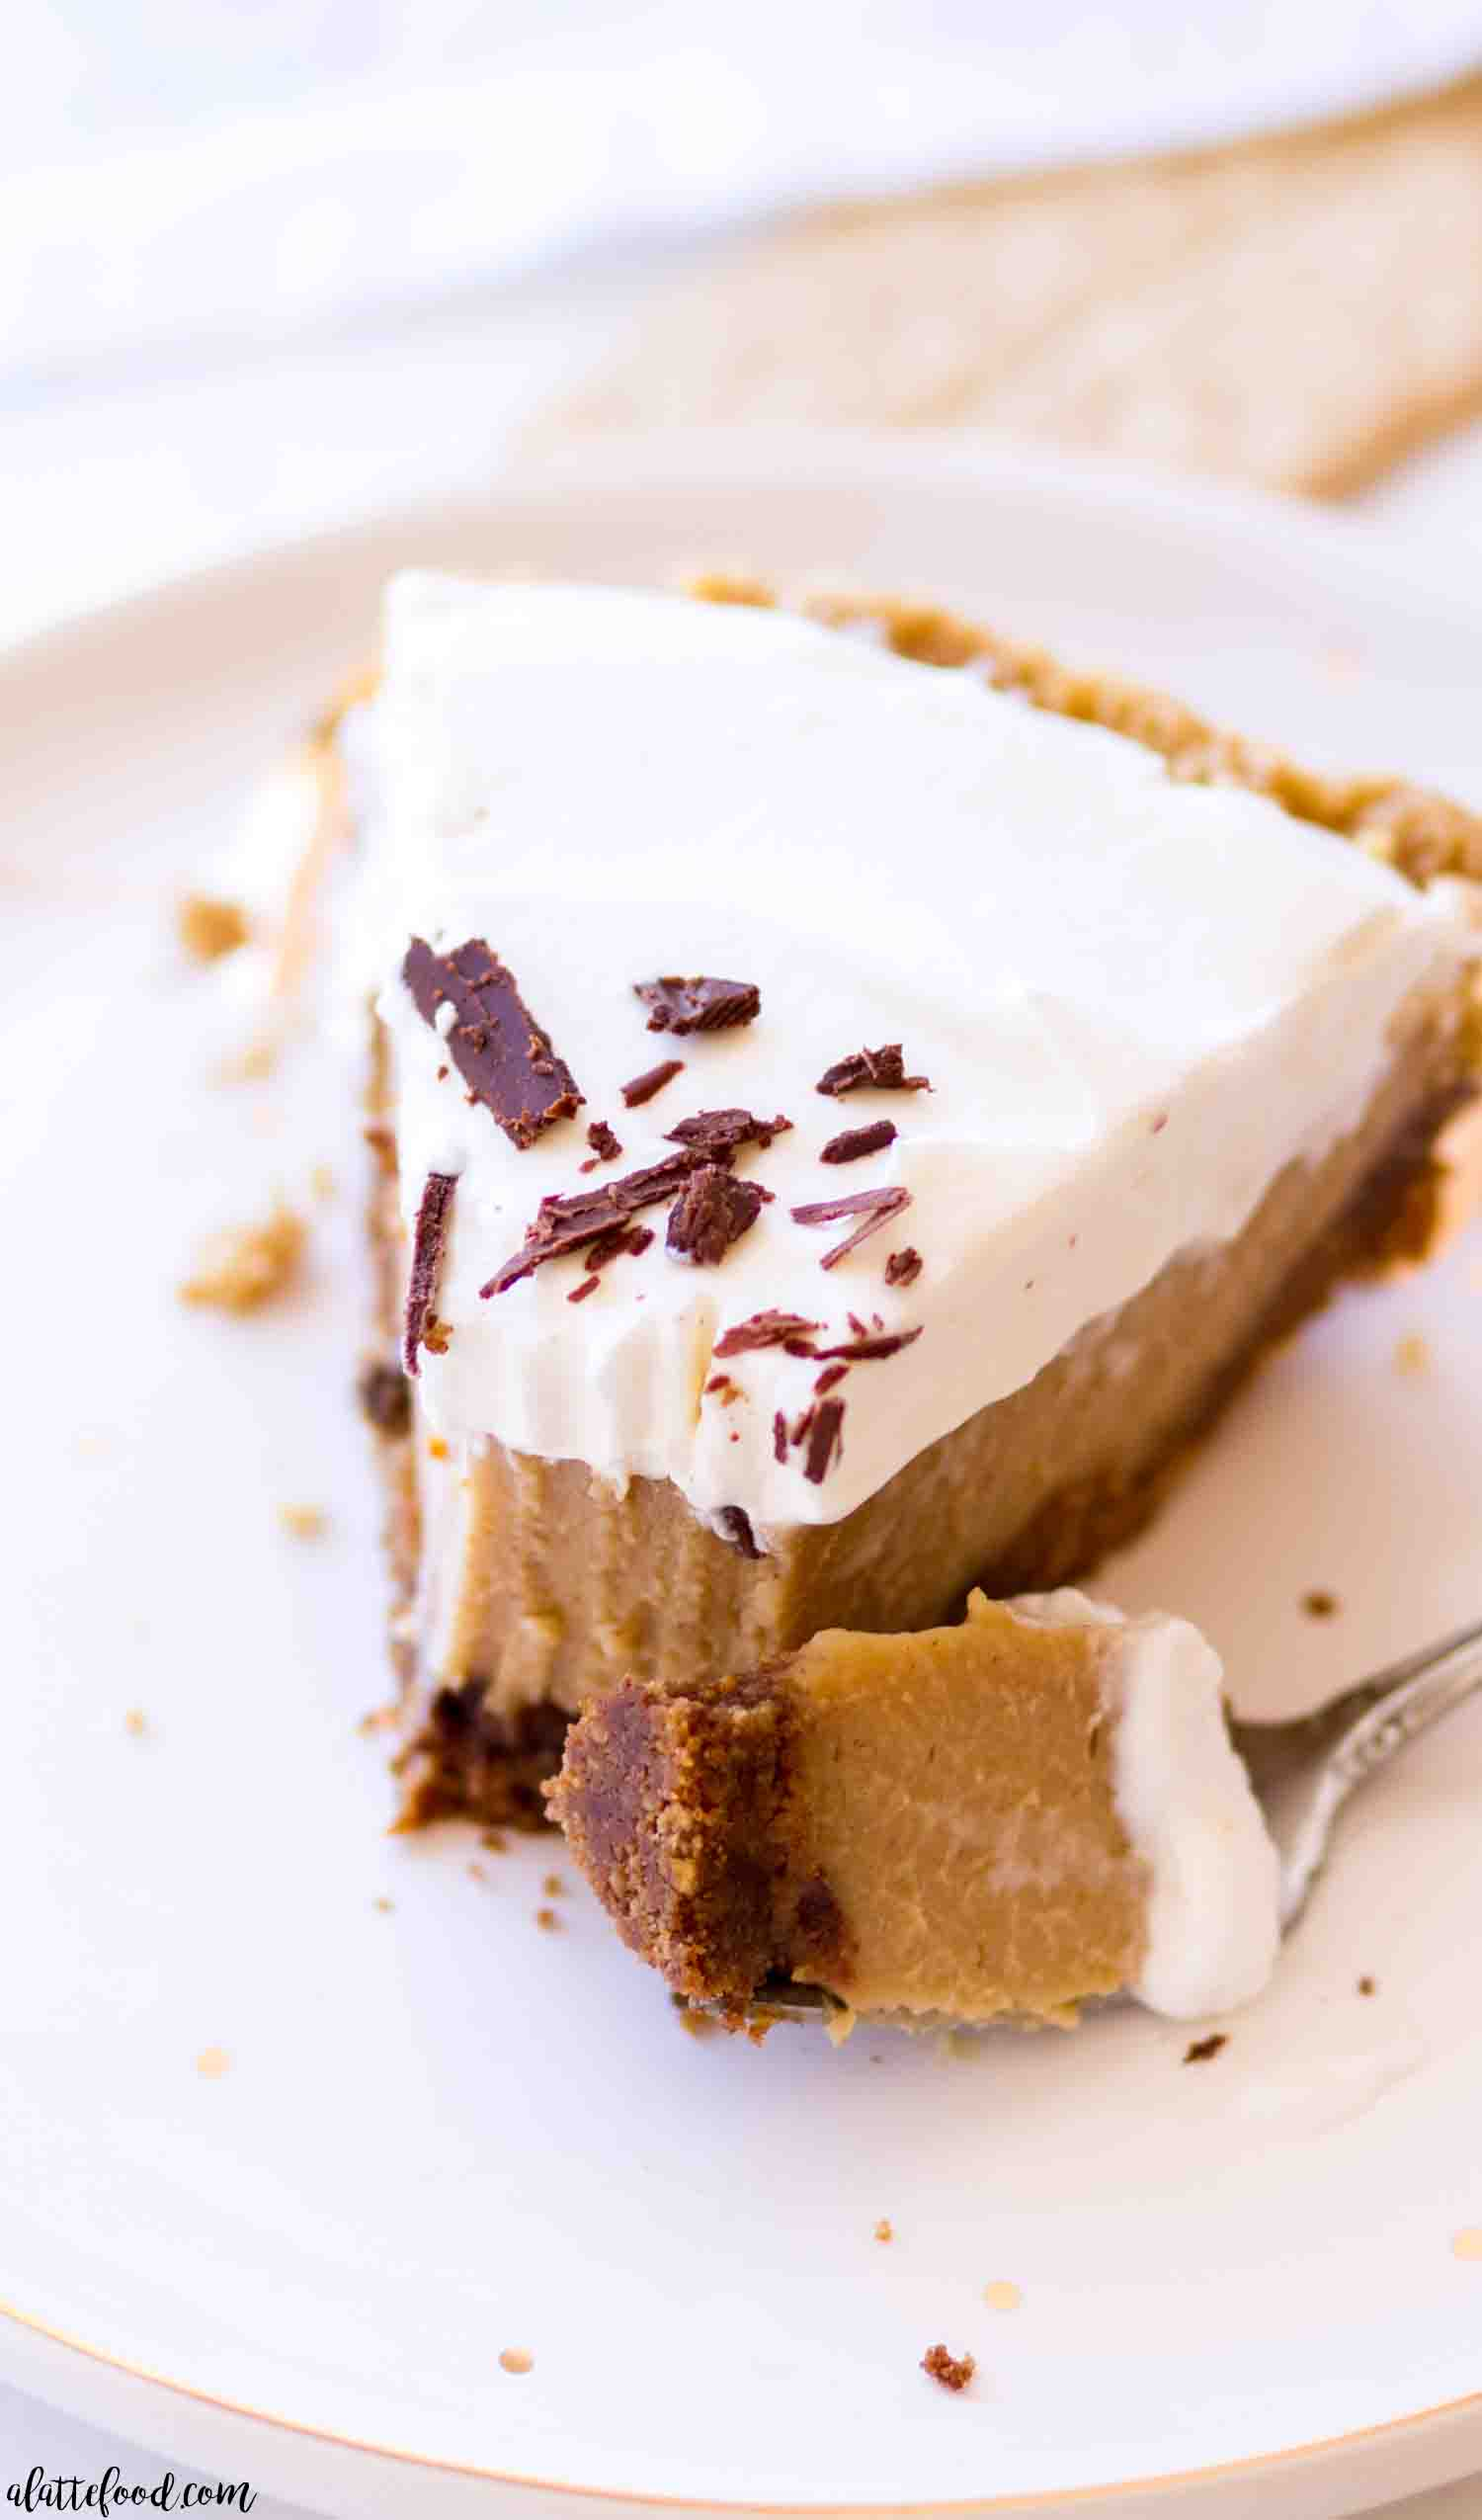 PEANUT BUTTER PIE WITH A GRAHAM CRACKER CRUST